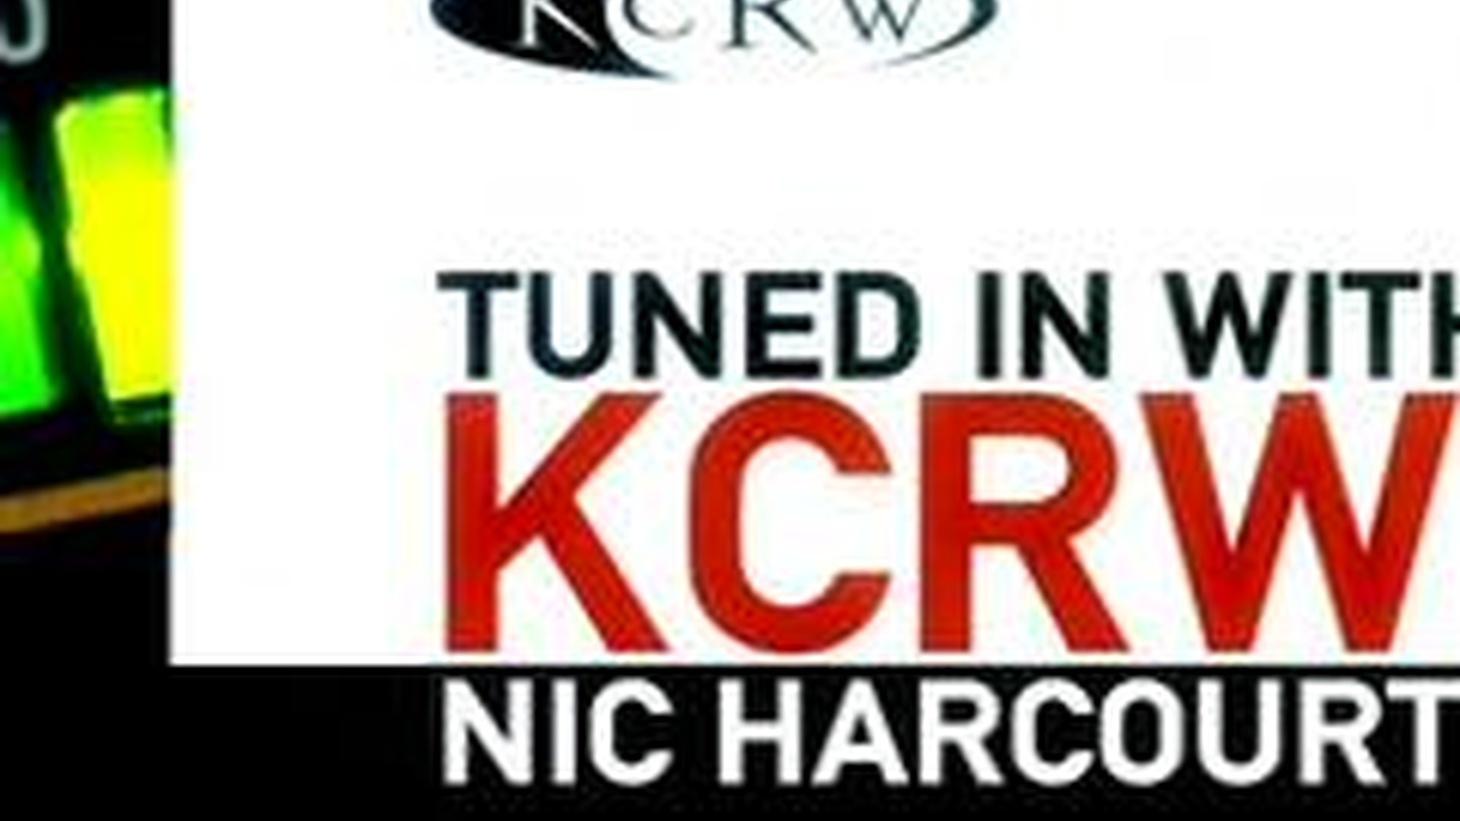 """This week on """"Tuned in with Nic Harcourt"""", Nic is playing new music from his favorite artists. Featuring songs from The Ting Tings (SOUNDS ECLECTIC-THE NEXT ONE), Ra Ra Riot (THE RHUMB LINE), Michael Franti & Spearhead (ALL REBEL ROCKERS), and The Pretenders (BREAK UP THE CONCRETE)."""